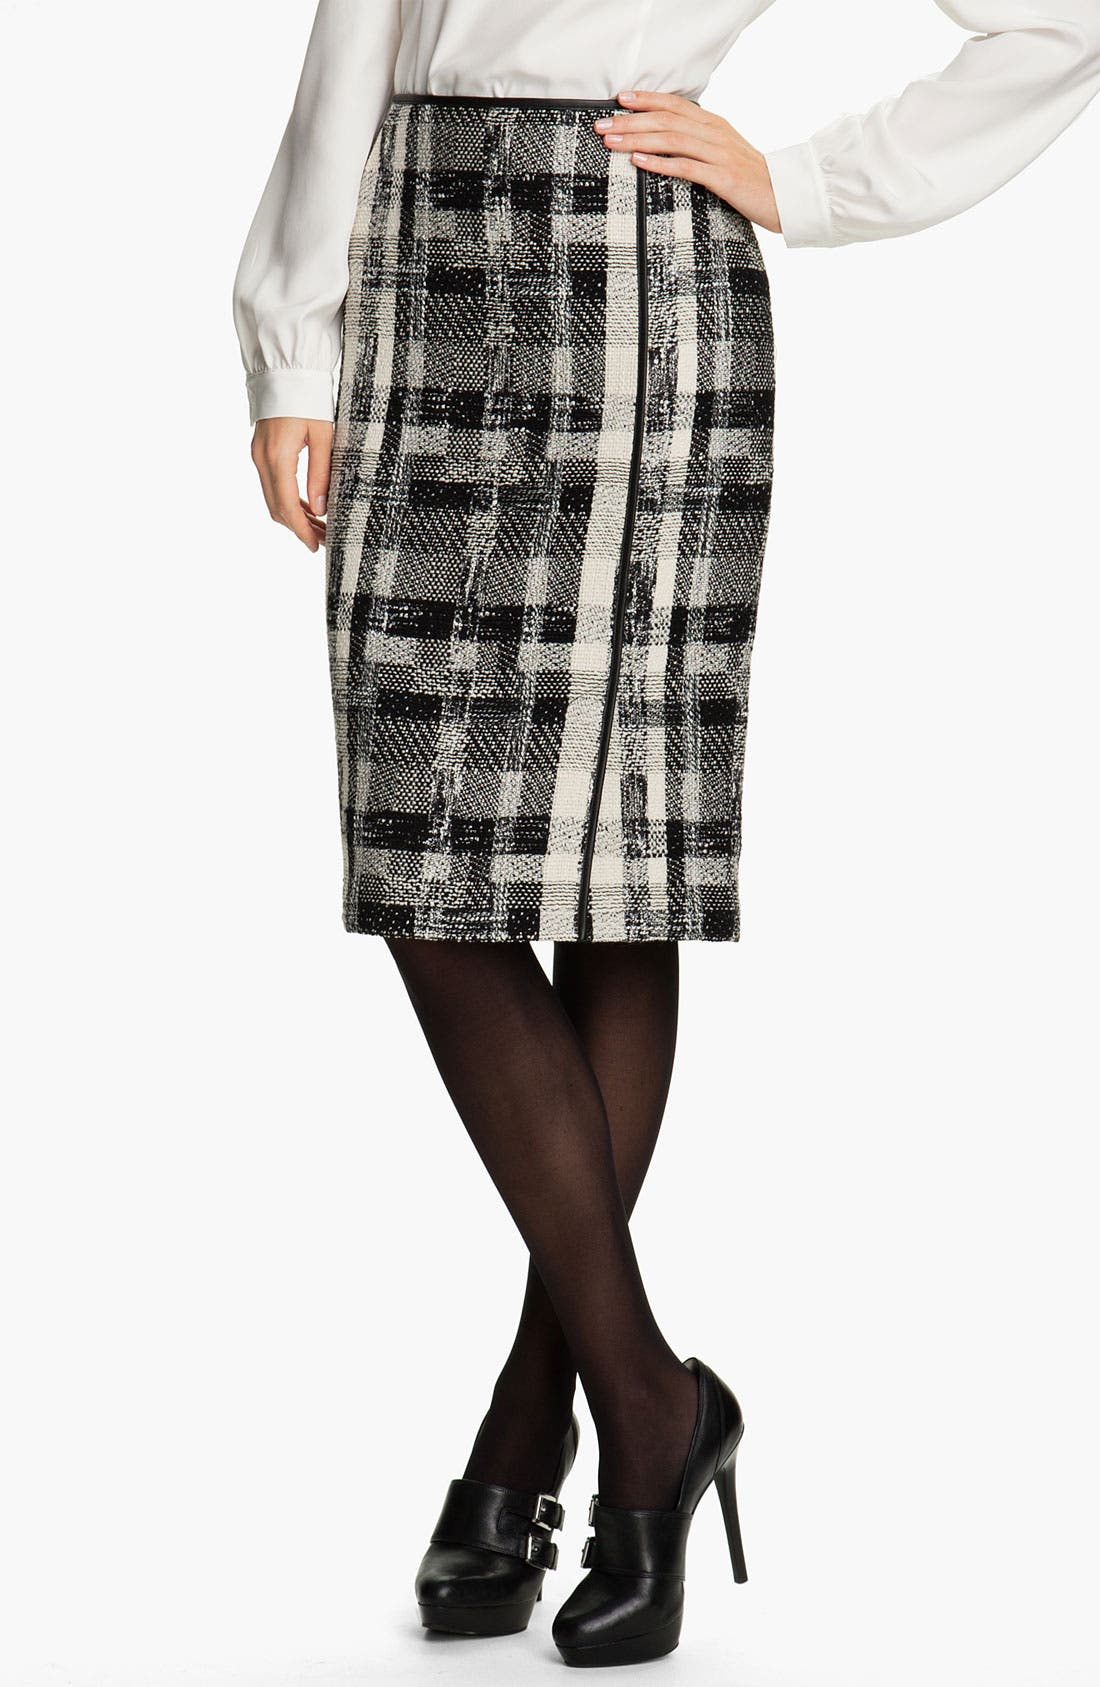 Alternate Image 1 Selected - Lafayette 148 New York Fragmented Tweed Skirt